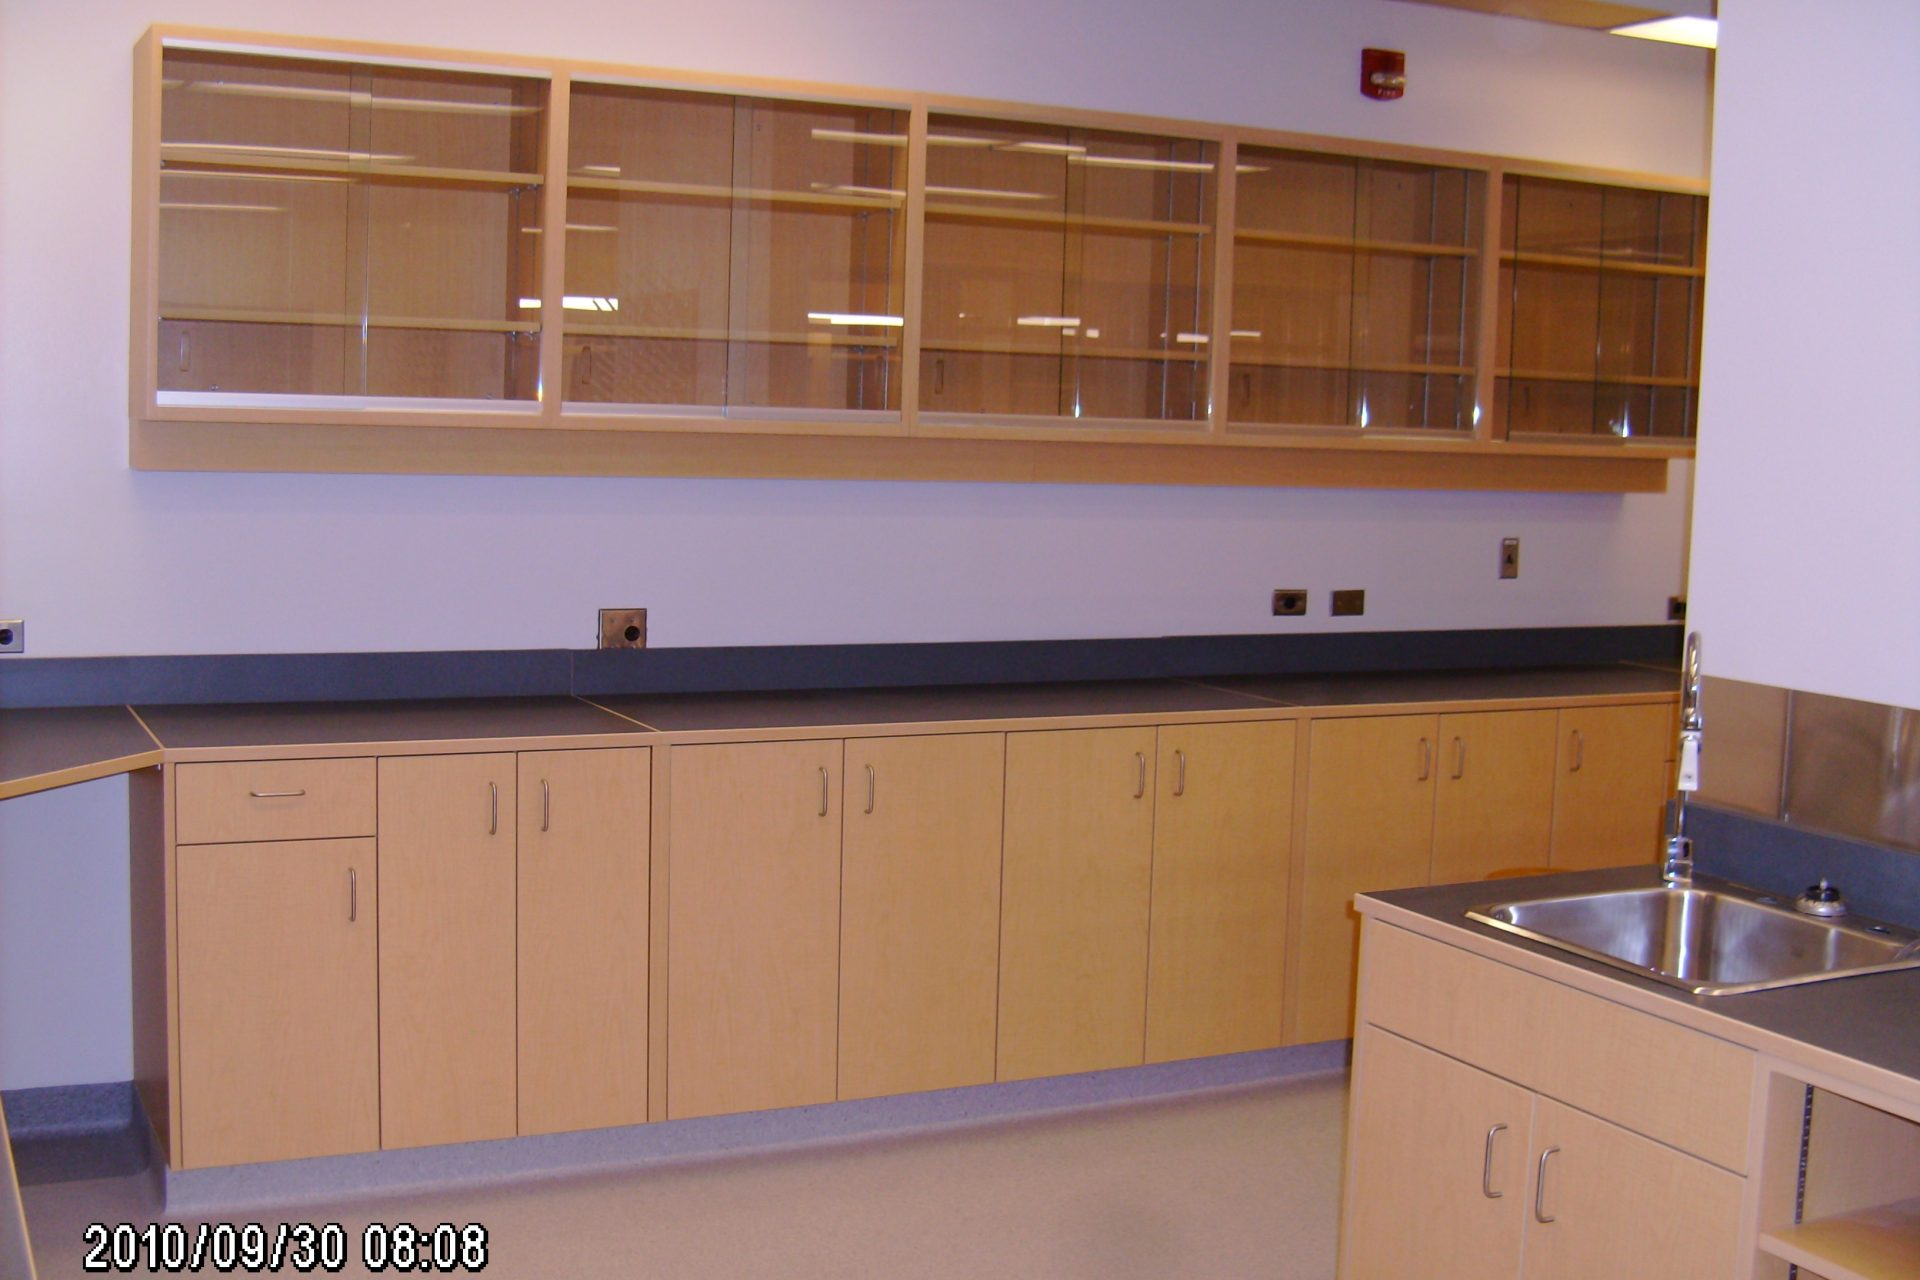 University of Manitoba Anatomy Lab 2